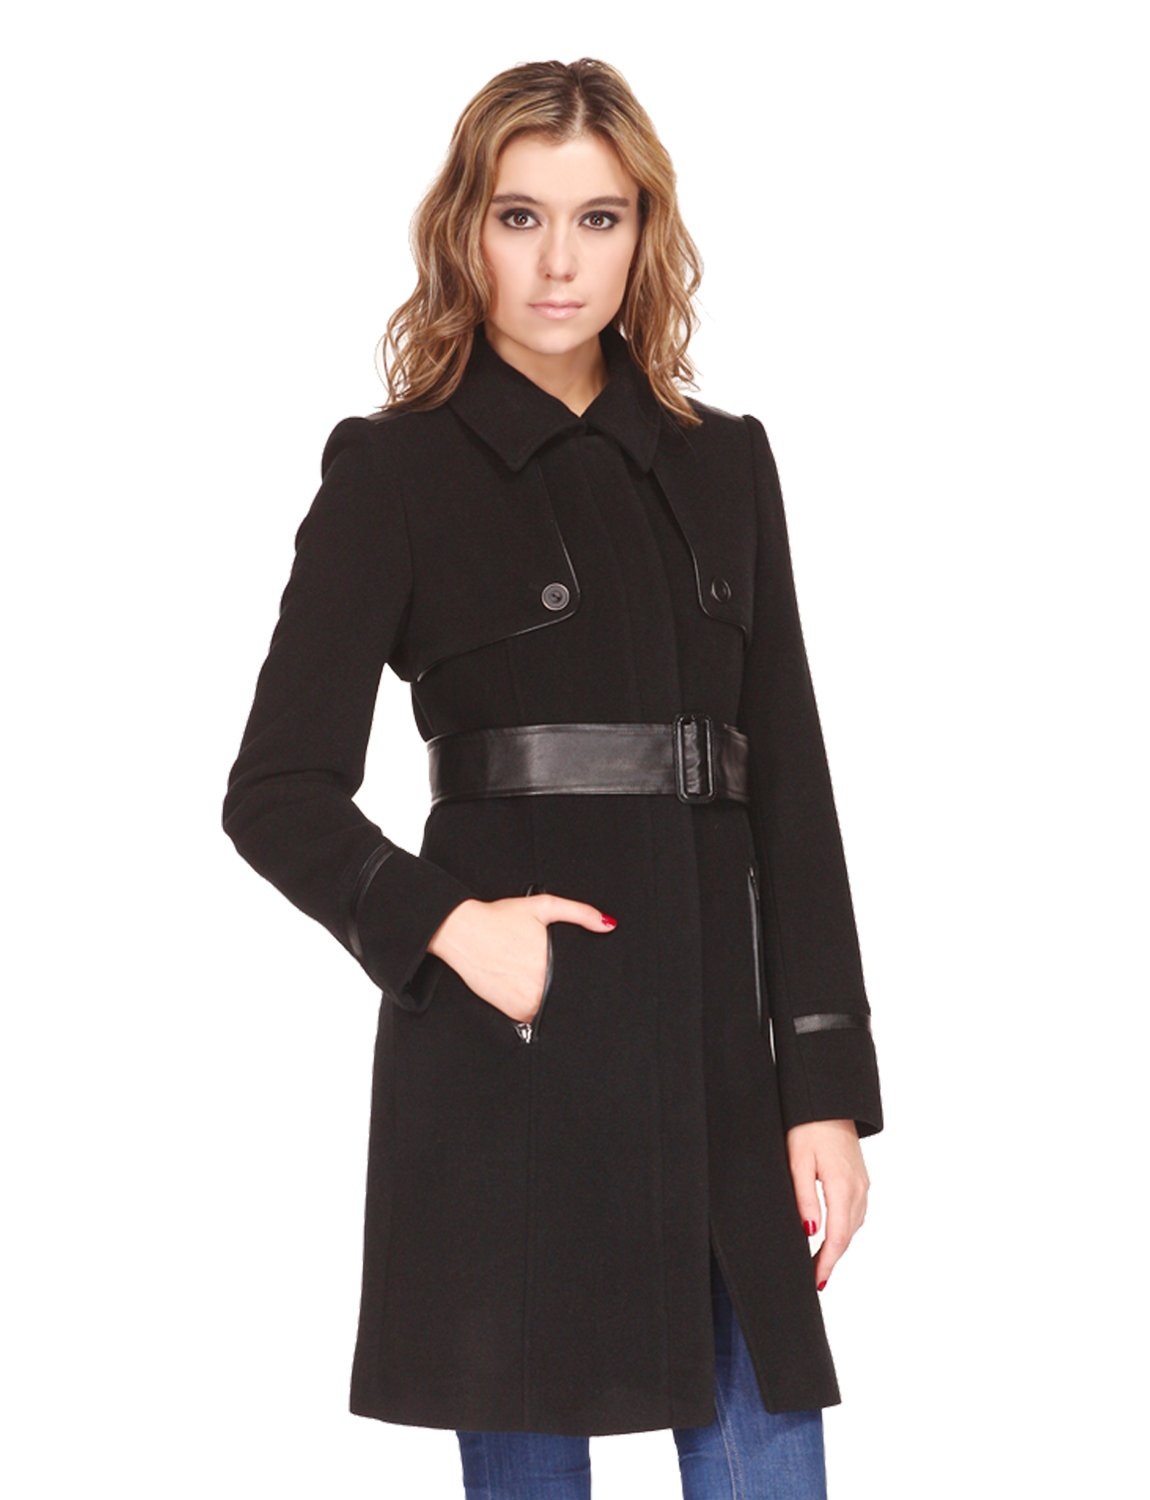 Zareen Women's Trench Style Wool Blend Coat With Leather Belt, Black, Small